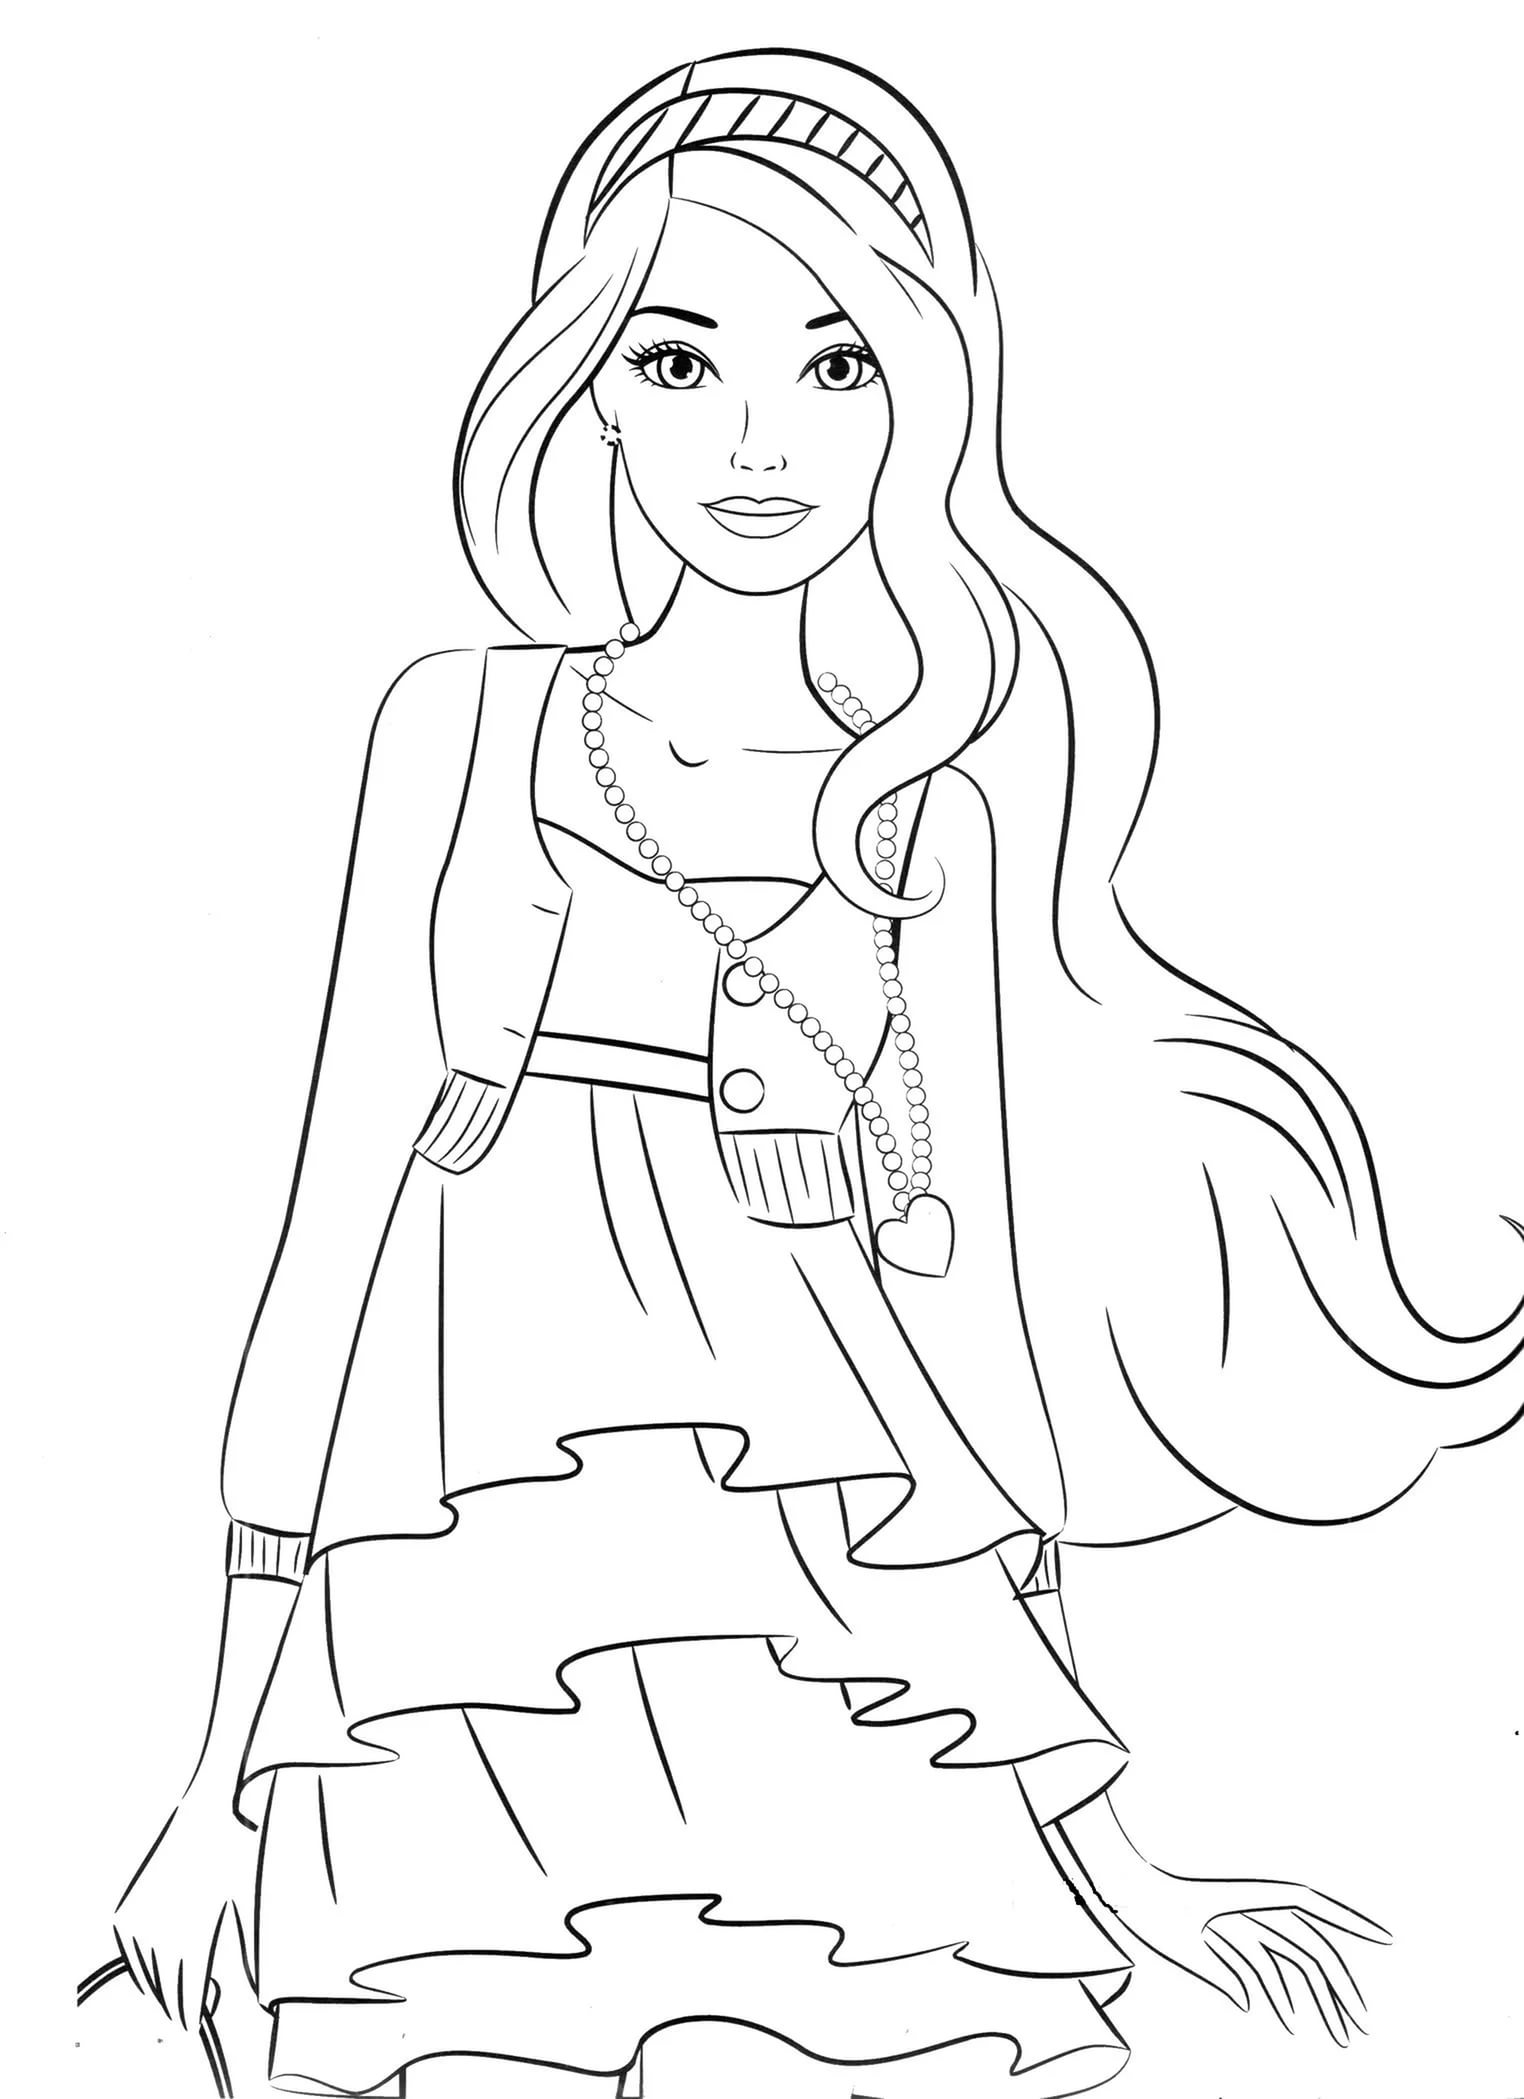 Coloring Pages For 8 9 10 Year Old Girls To Download And